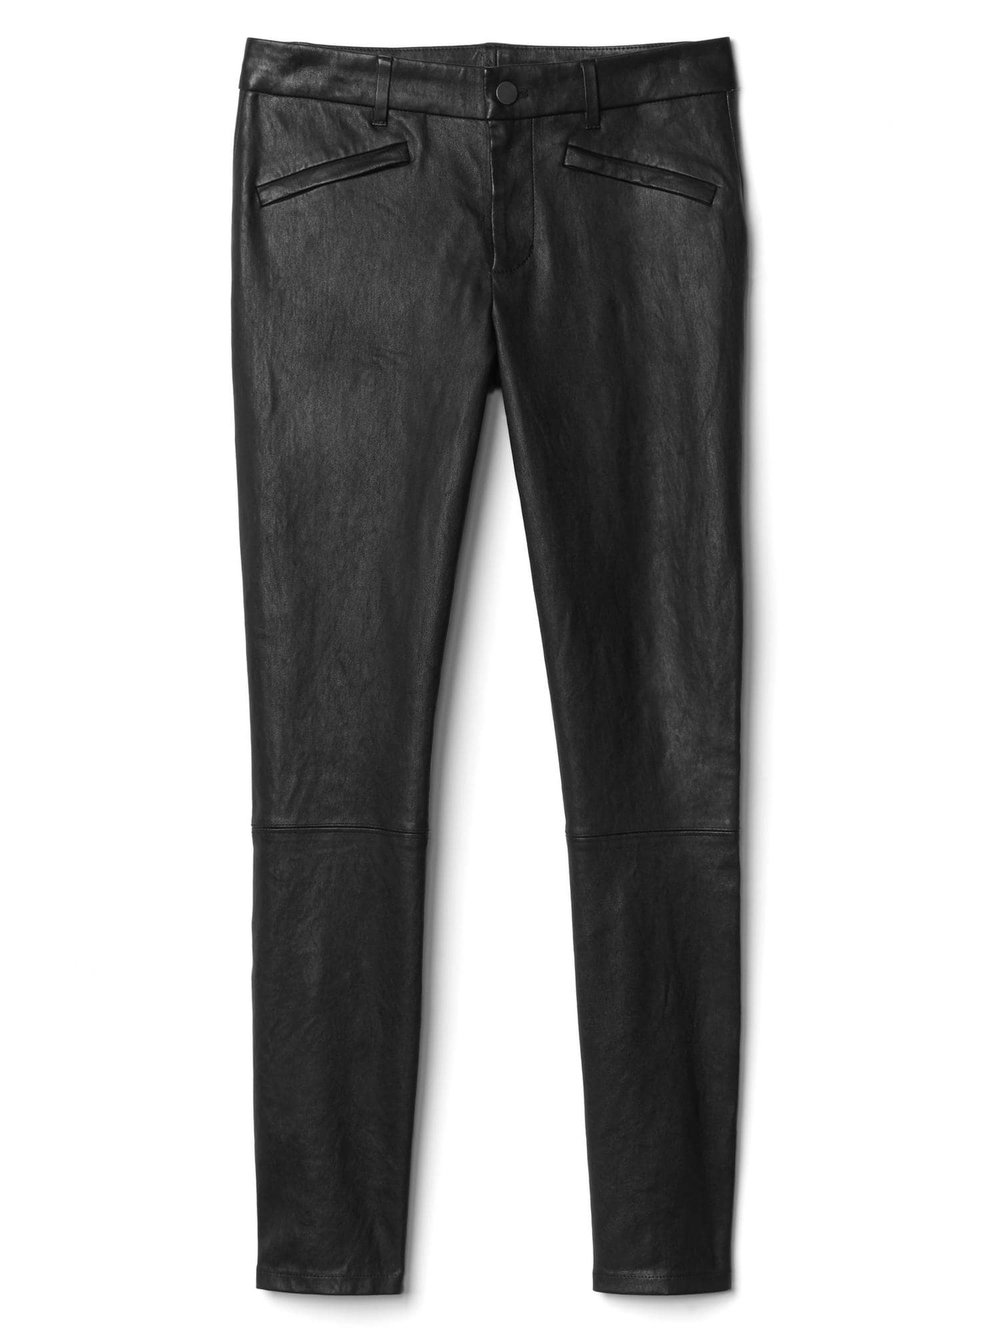 leather-pants-fall-2017.jpg